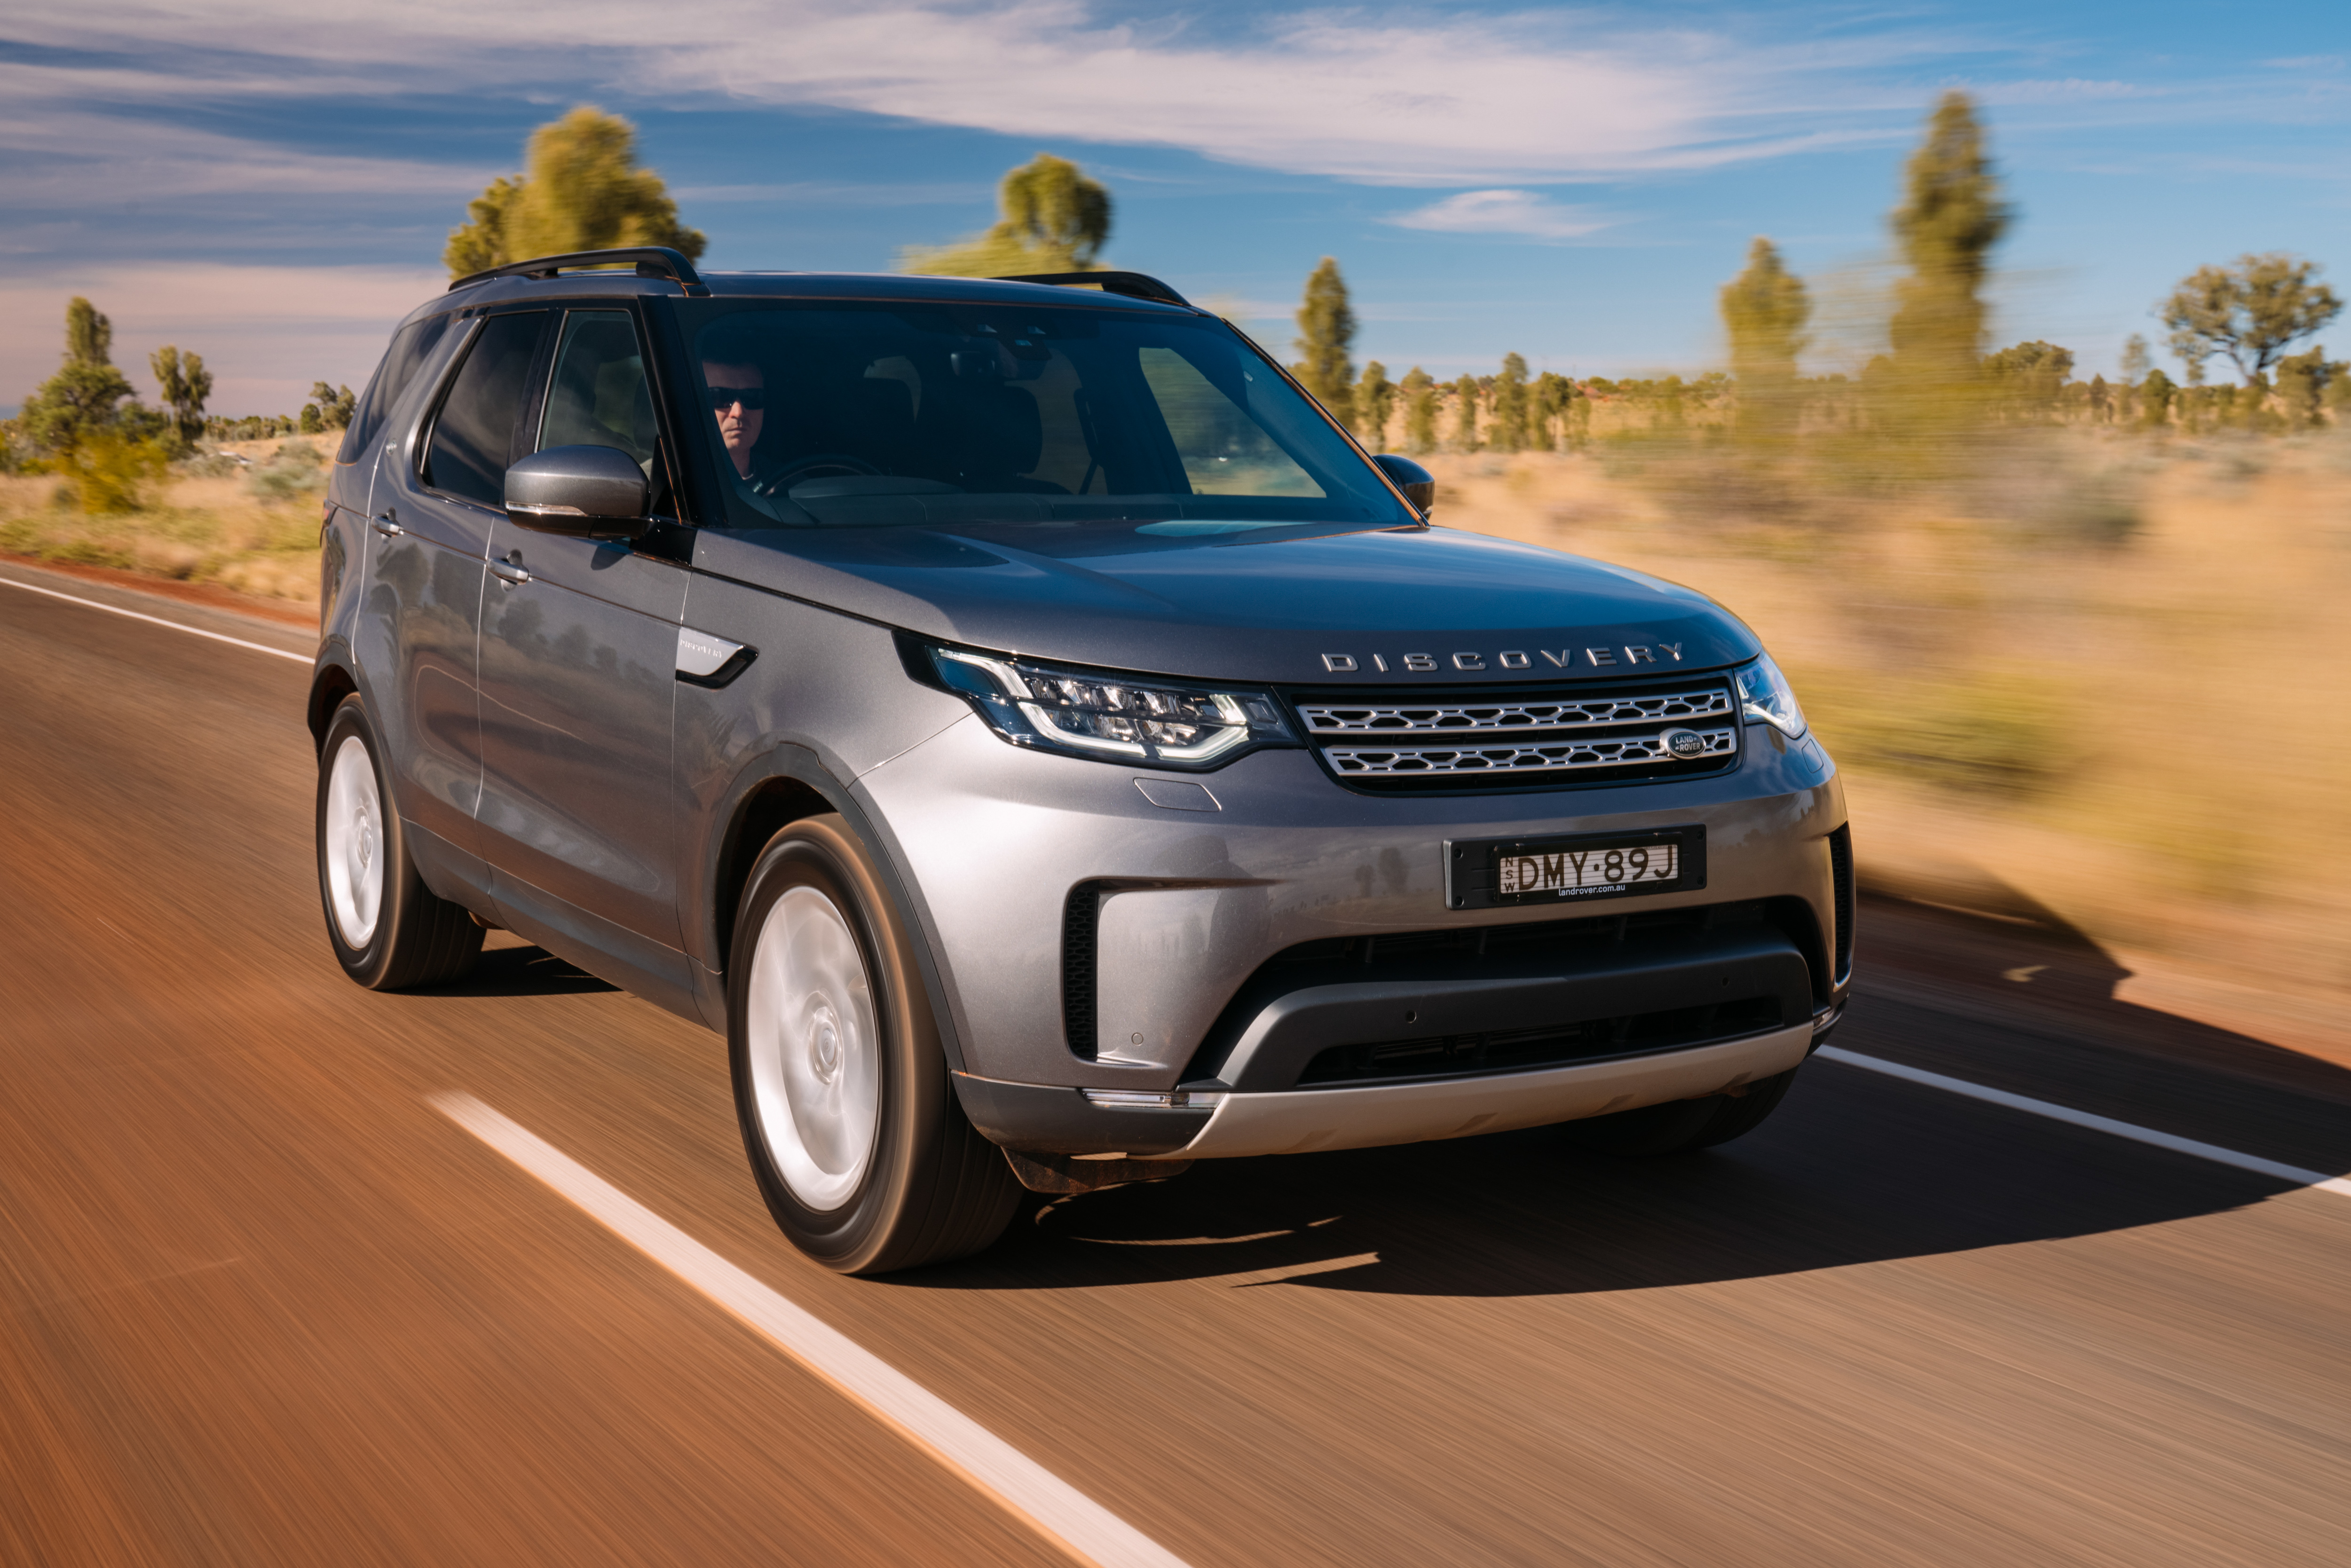 2017 Land Rover Discovery SD4 HSE new car review